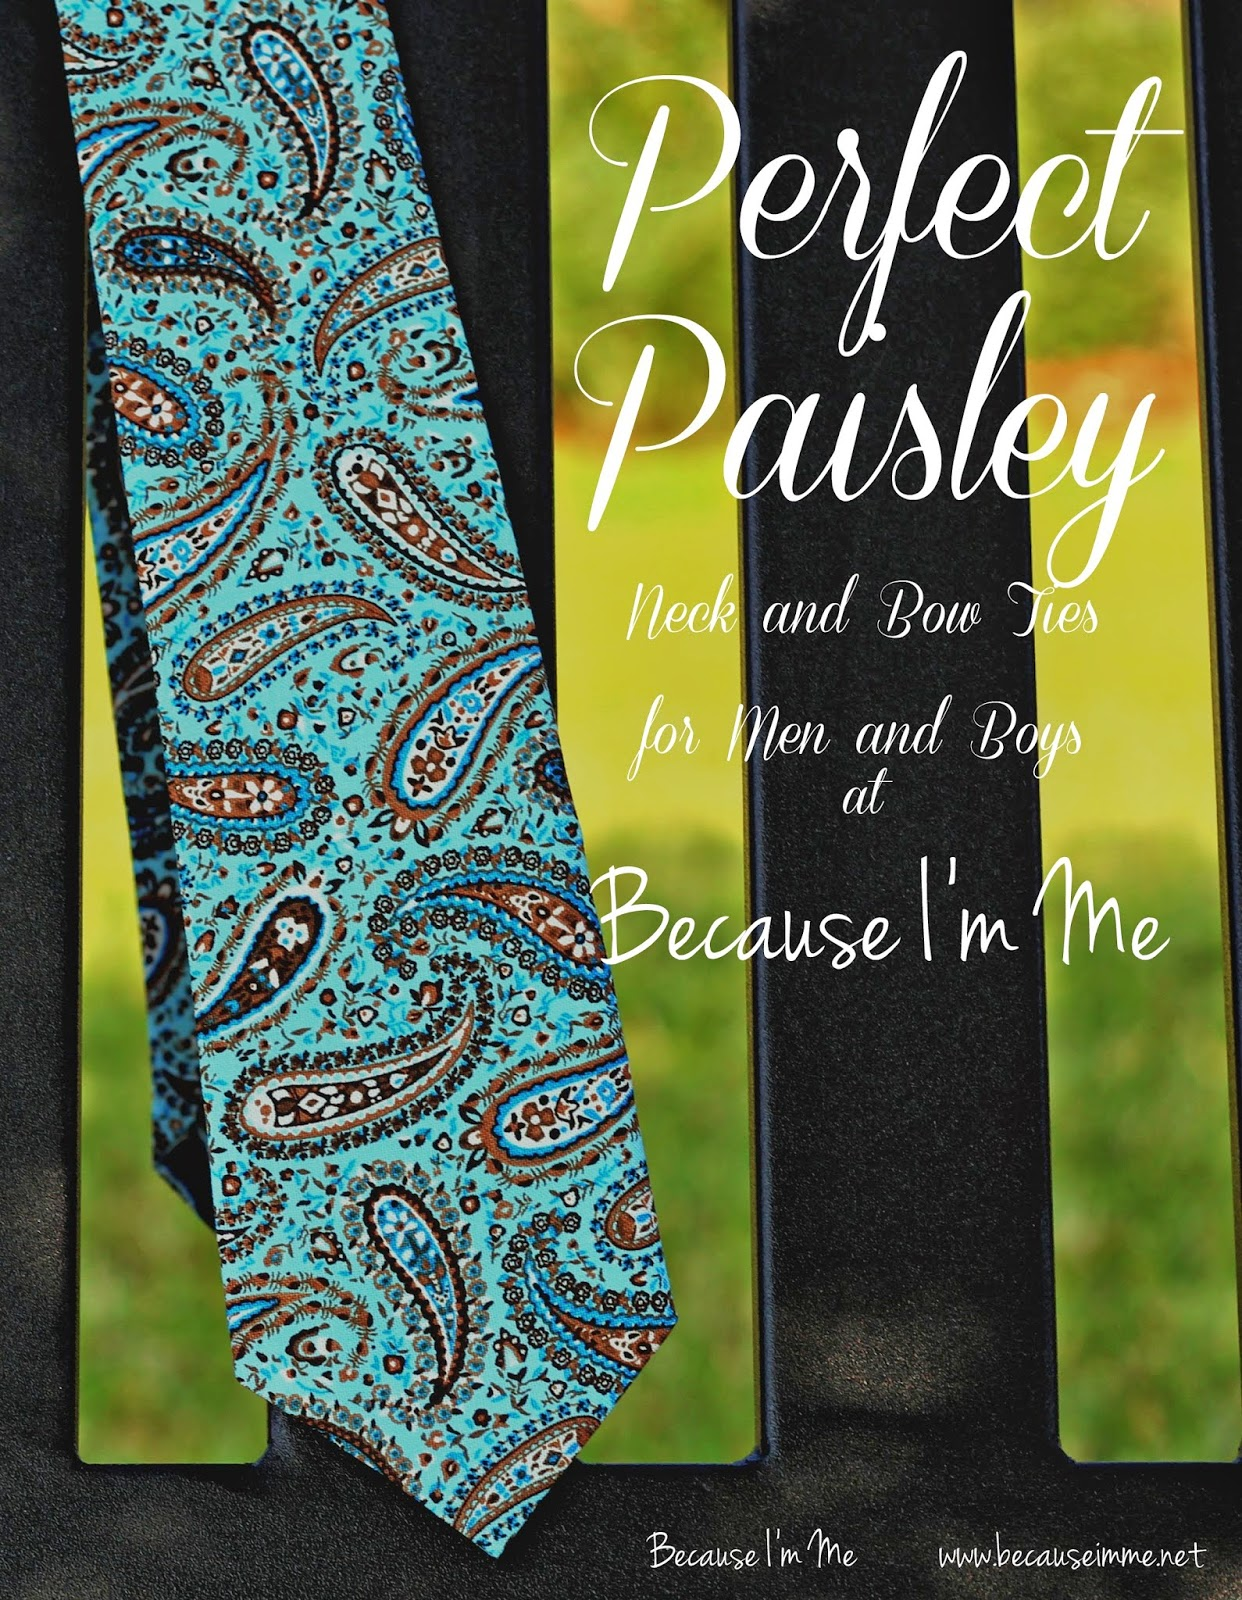 Because I'm Me blue and brown paisley woven cotton neckties and bow ties for men and boys